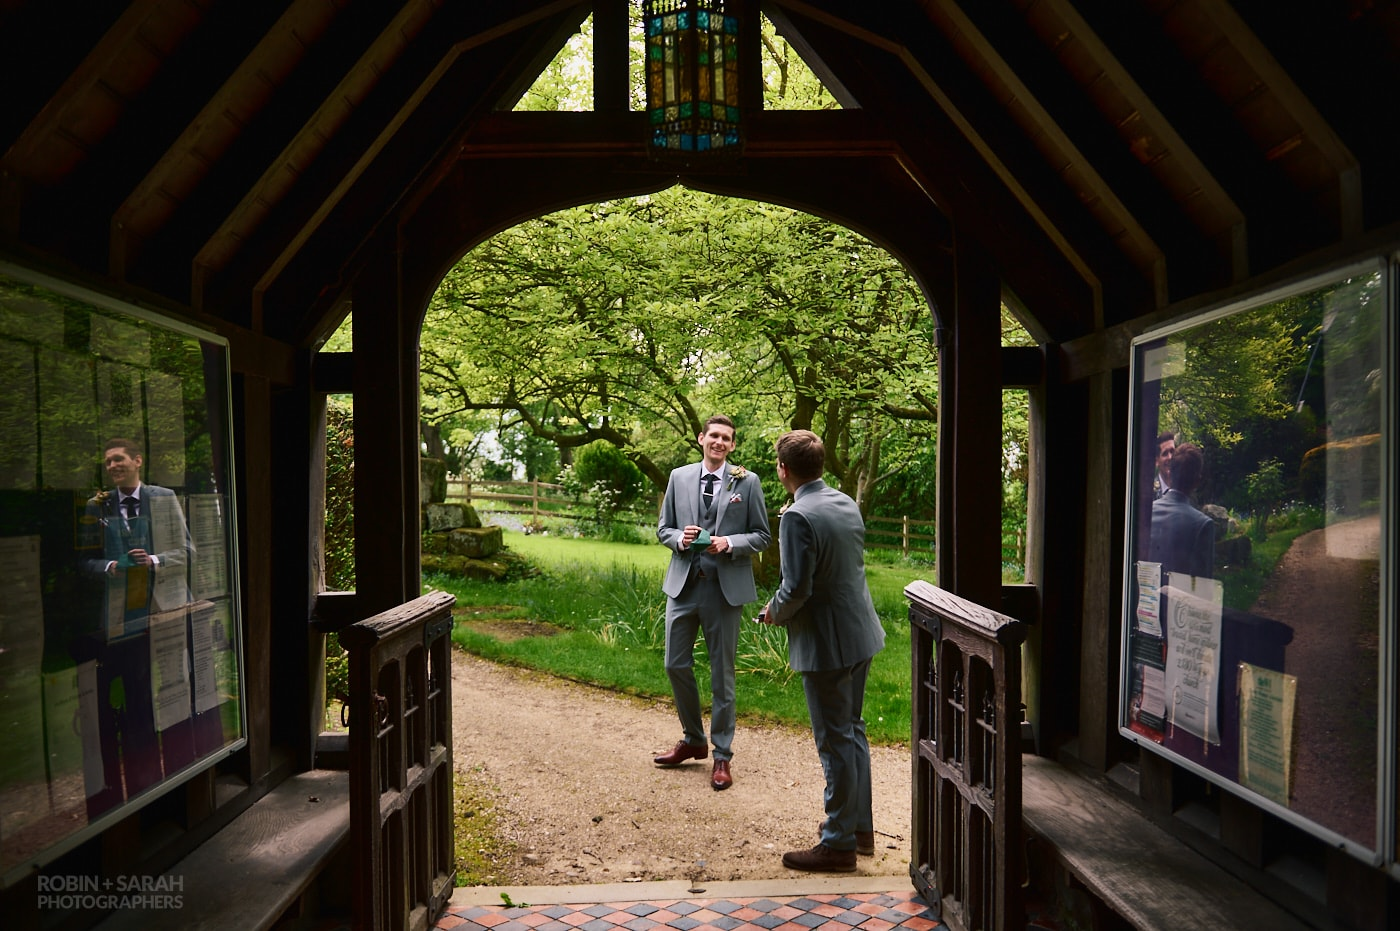 Groom and best man chat outside church before wedding service